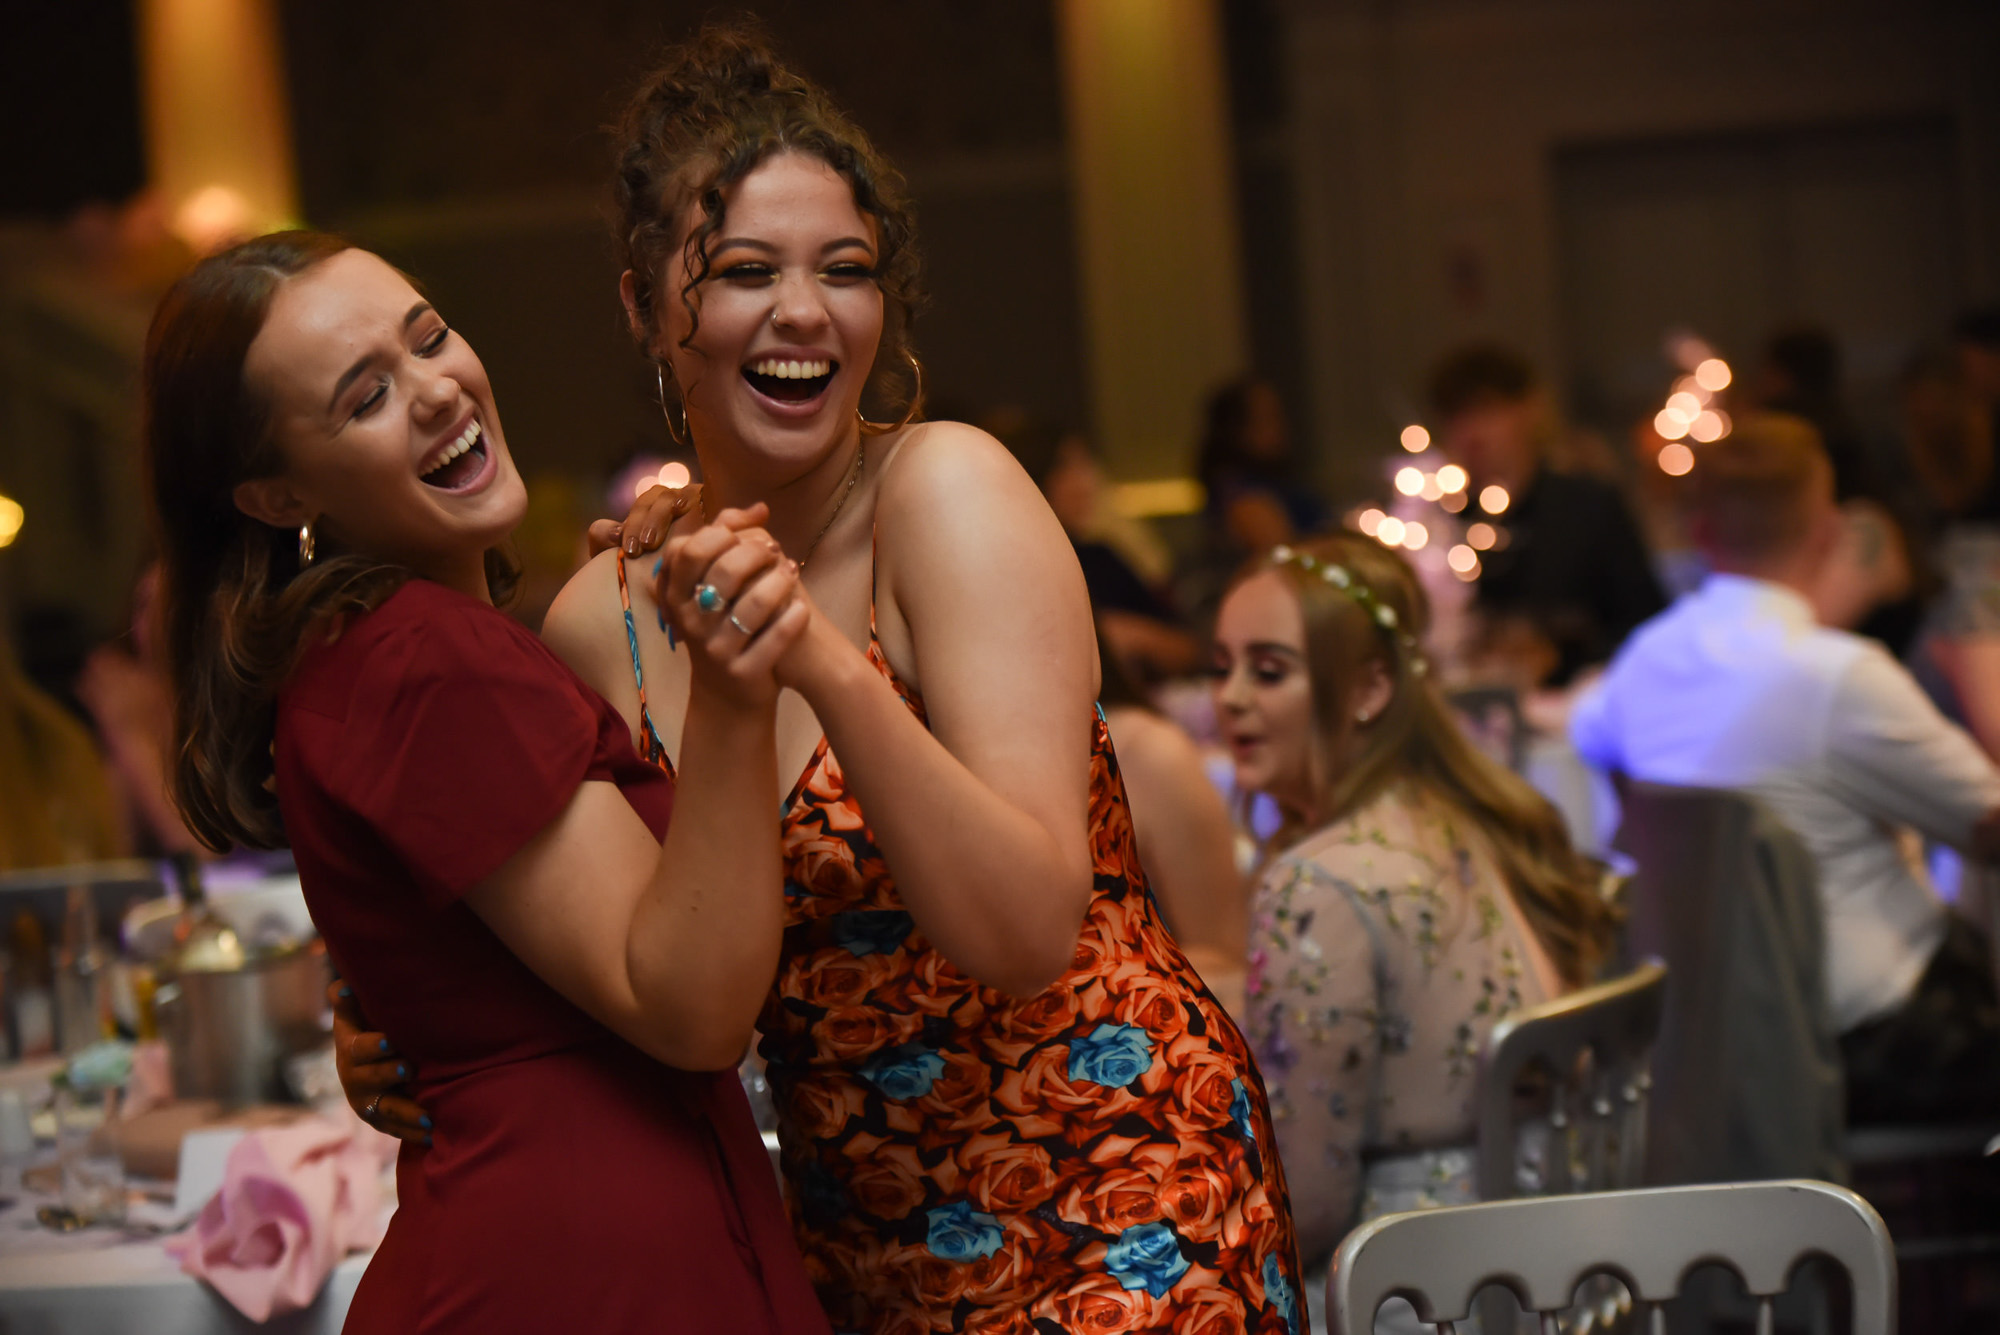 UCLAN_MT_BALL_2019_335.jpg